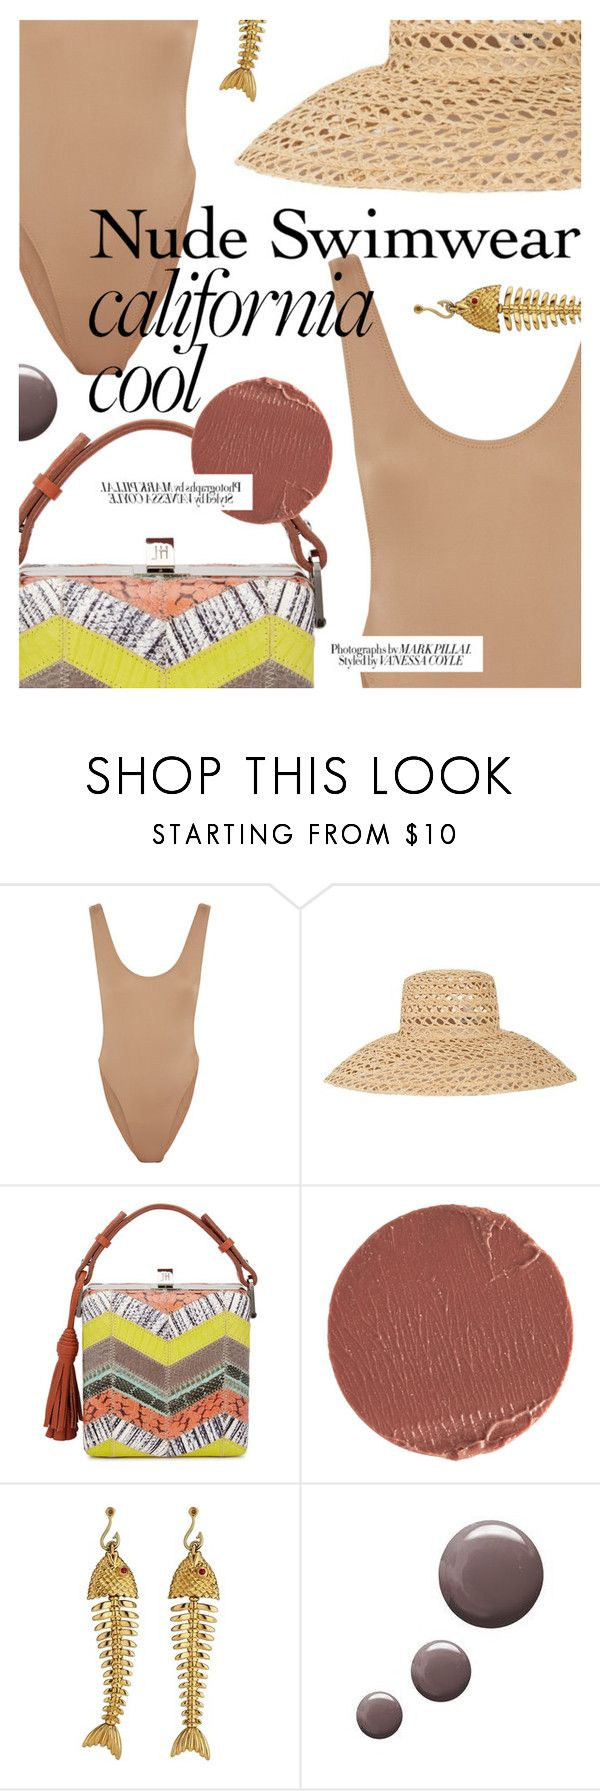 """Bare It All: Nude Swimwear"" by cultofsharon ❤ liked on Polyvore featuring Norma Kamali, Samuji, Jill Haber, Estée Lauder, Tiffany & Co., Karen Millen and Topshop"